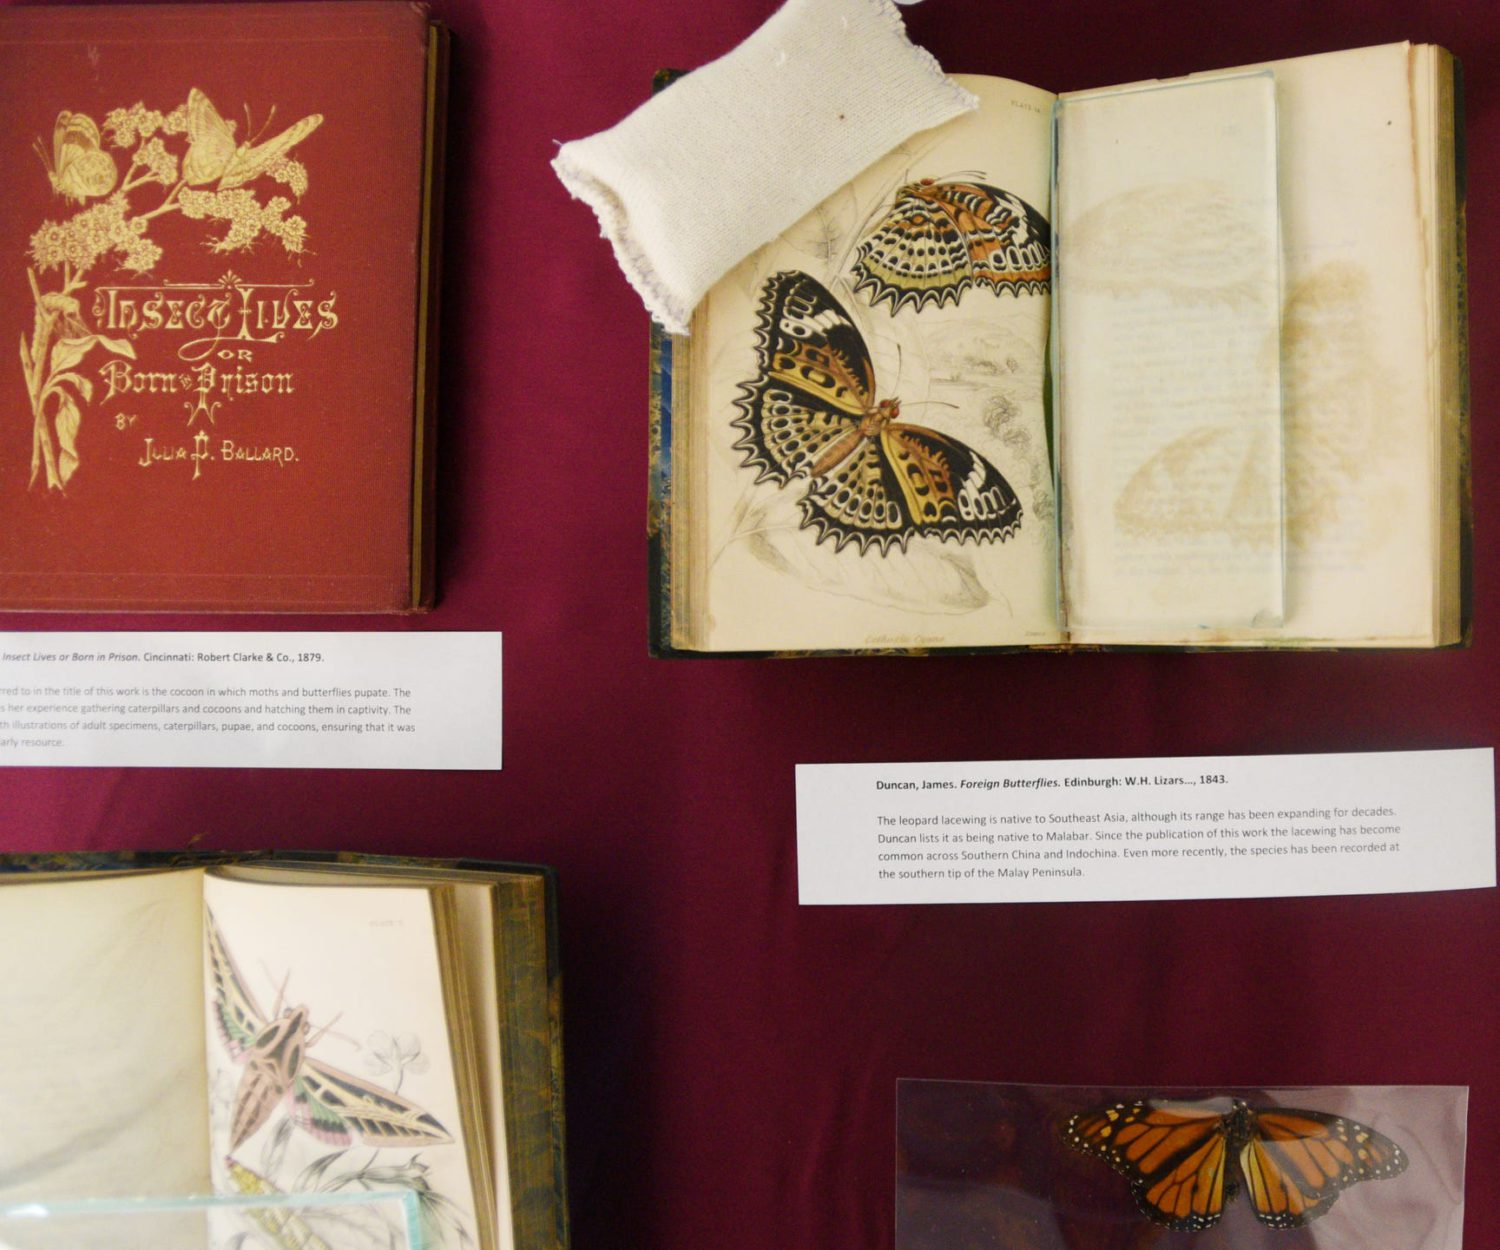 A book from Noel Memorial Librarys rare book collection current exhibition